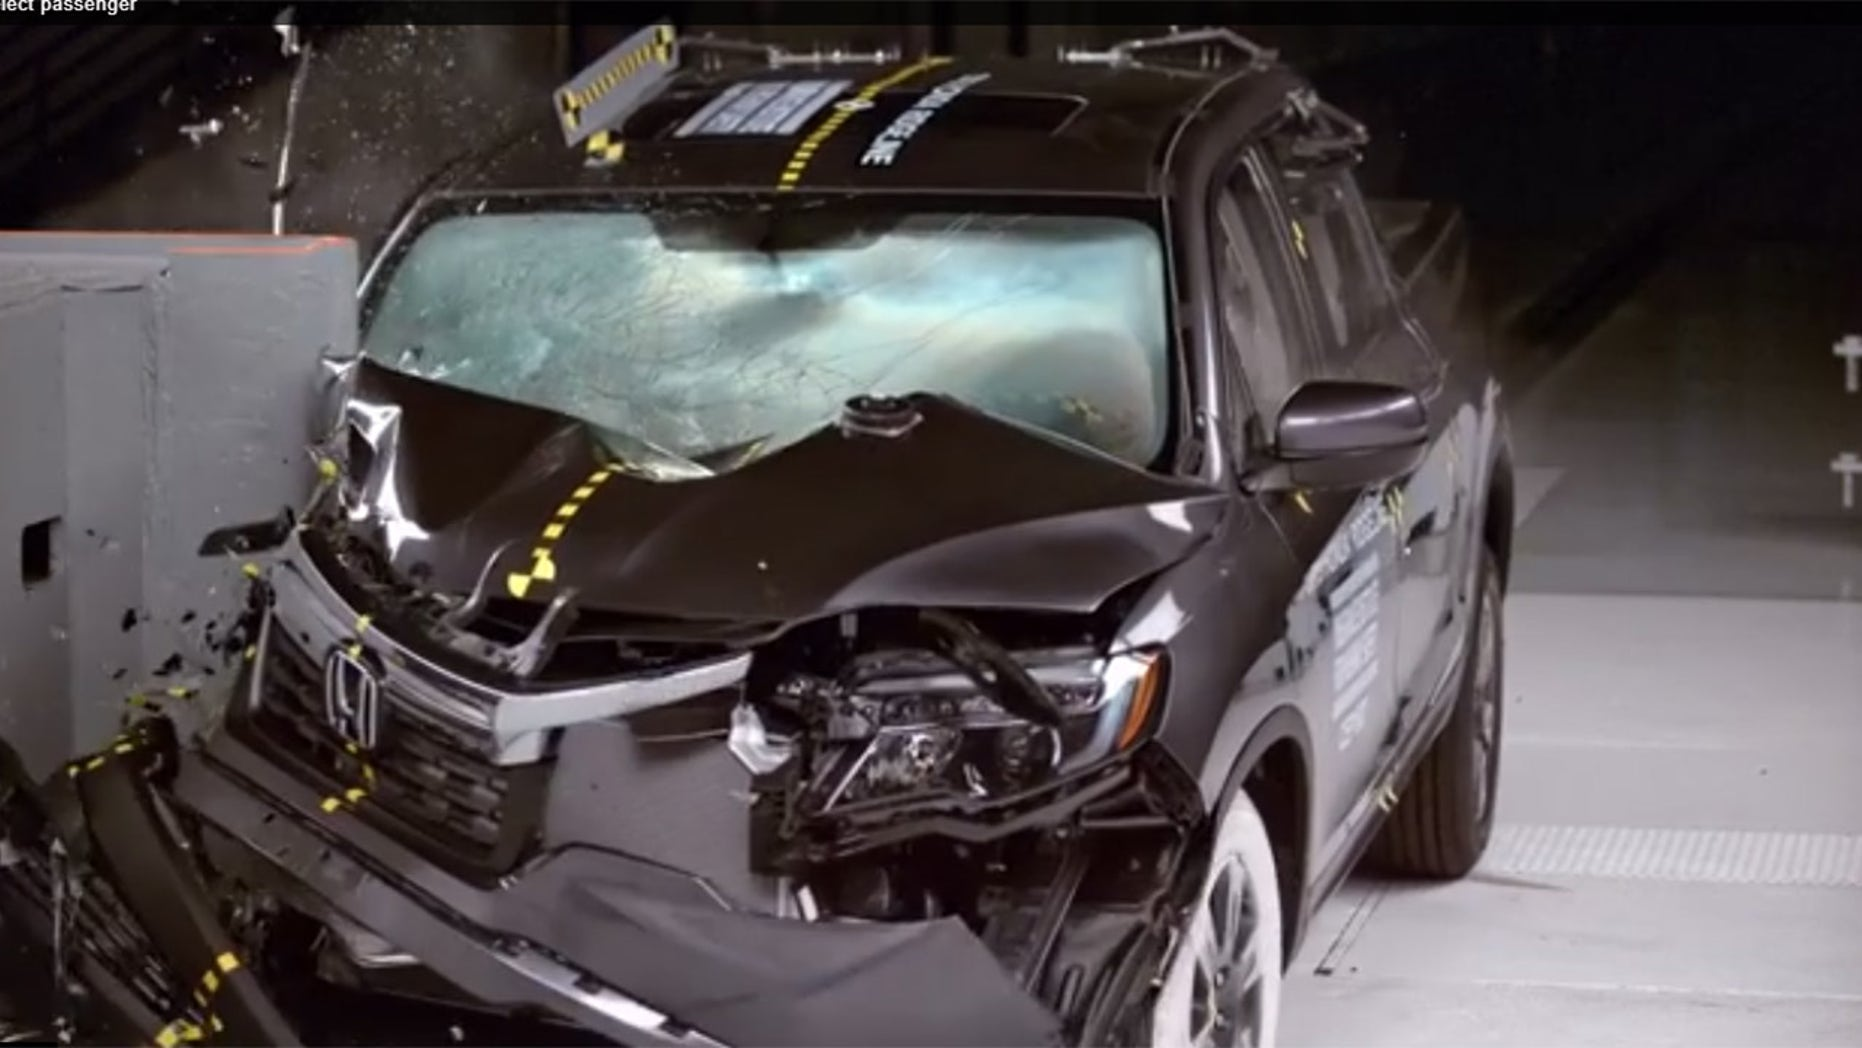 Good headlights and a superior collision avoidance system earned the Honda Ridgeline a Top Safety Pick ranking.